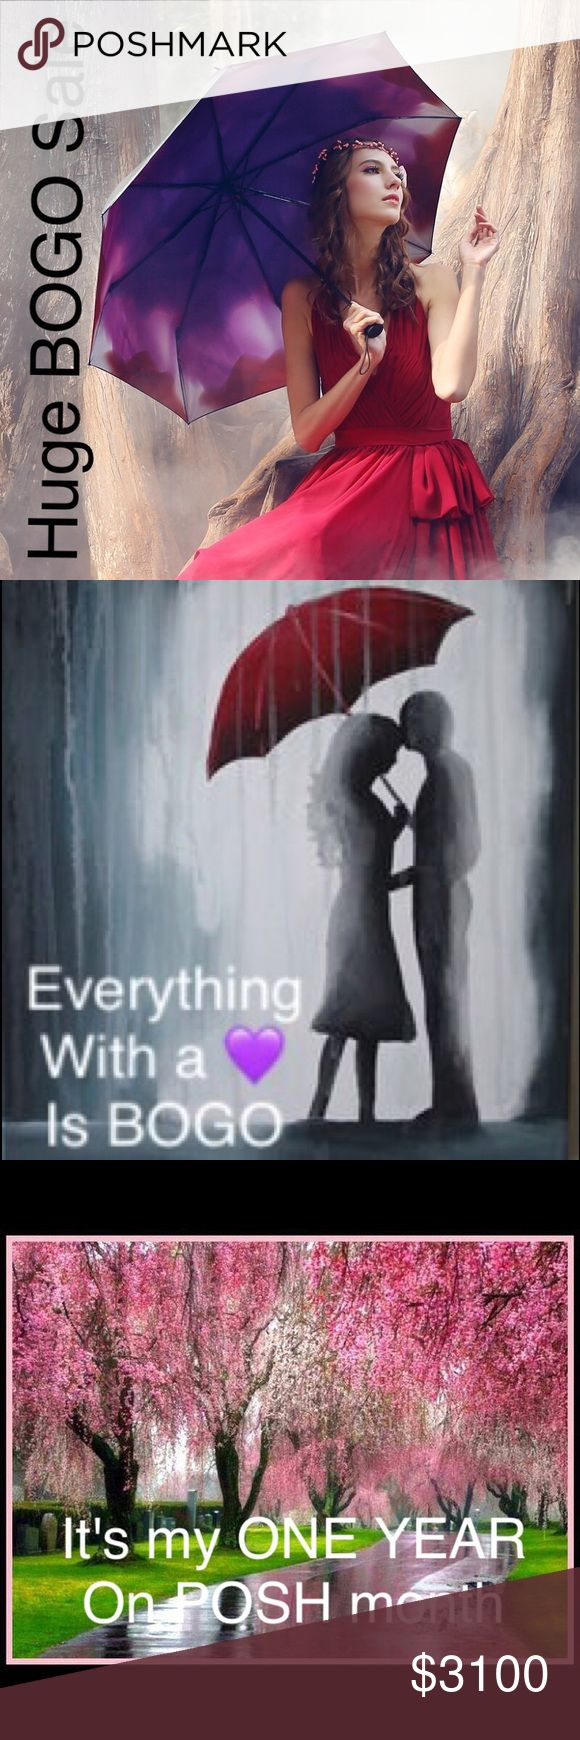 APRIL ALL MONTH Start bundling your sale items now. Get ready for my 1 year posh anniversary. Celebrate with me. Make an offer on your bundle by eliminating the free items. All items with 💜 are BOGO. Other